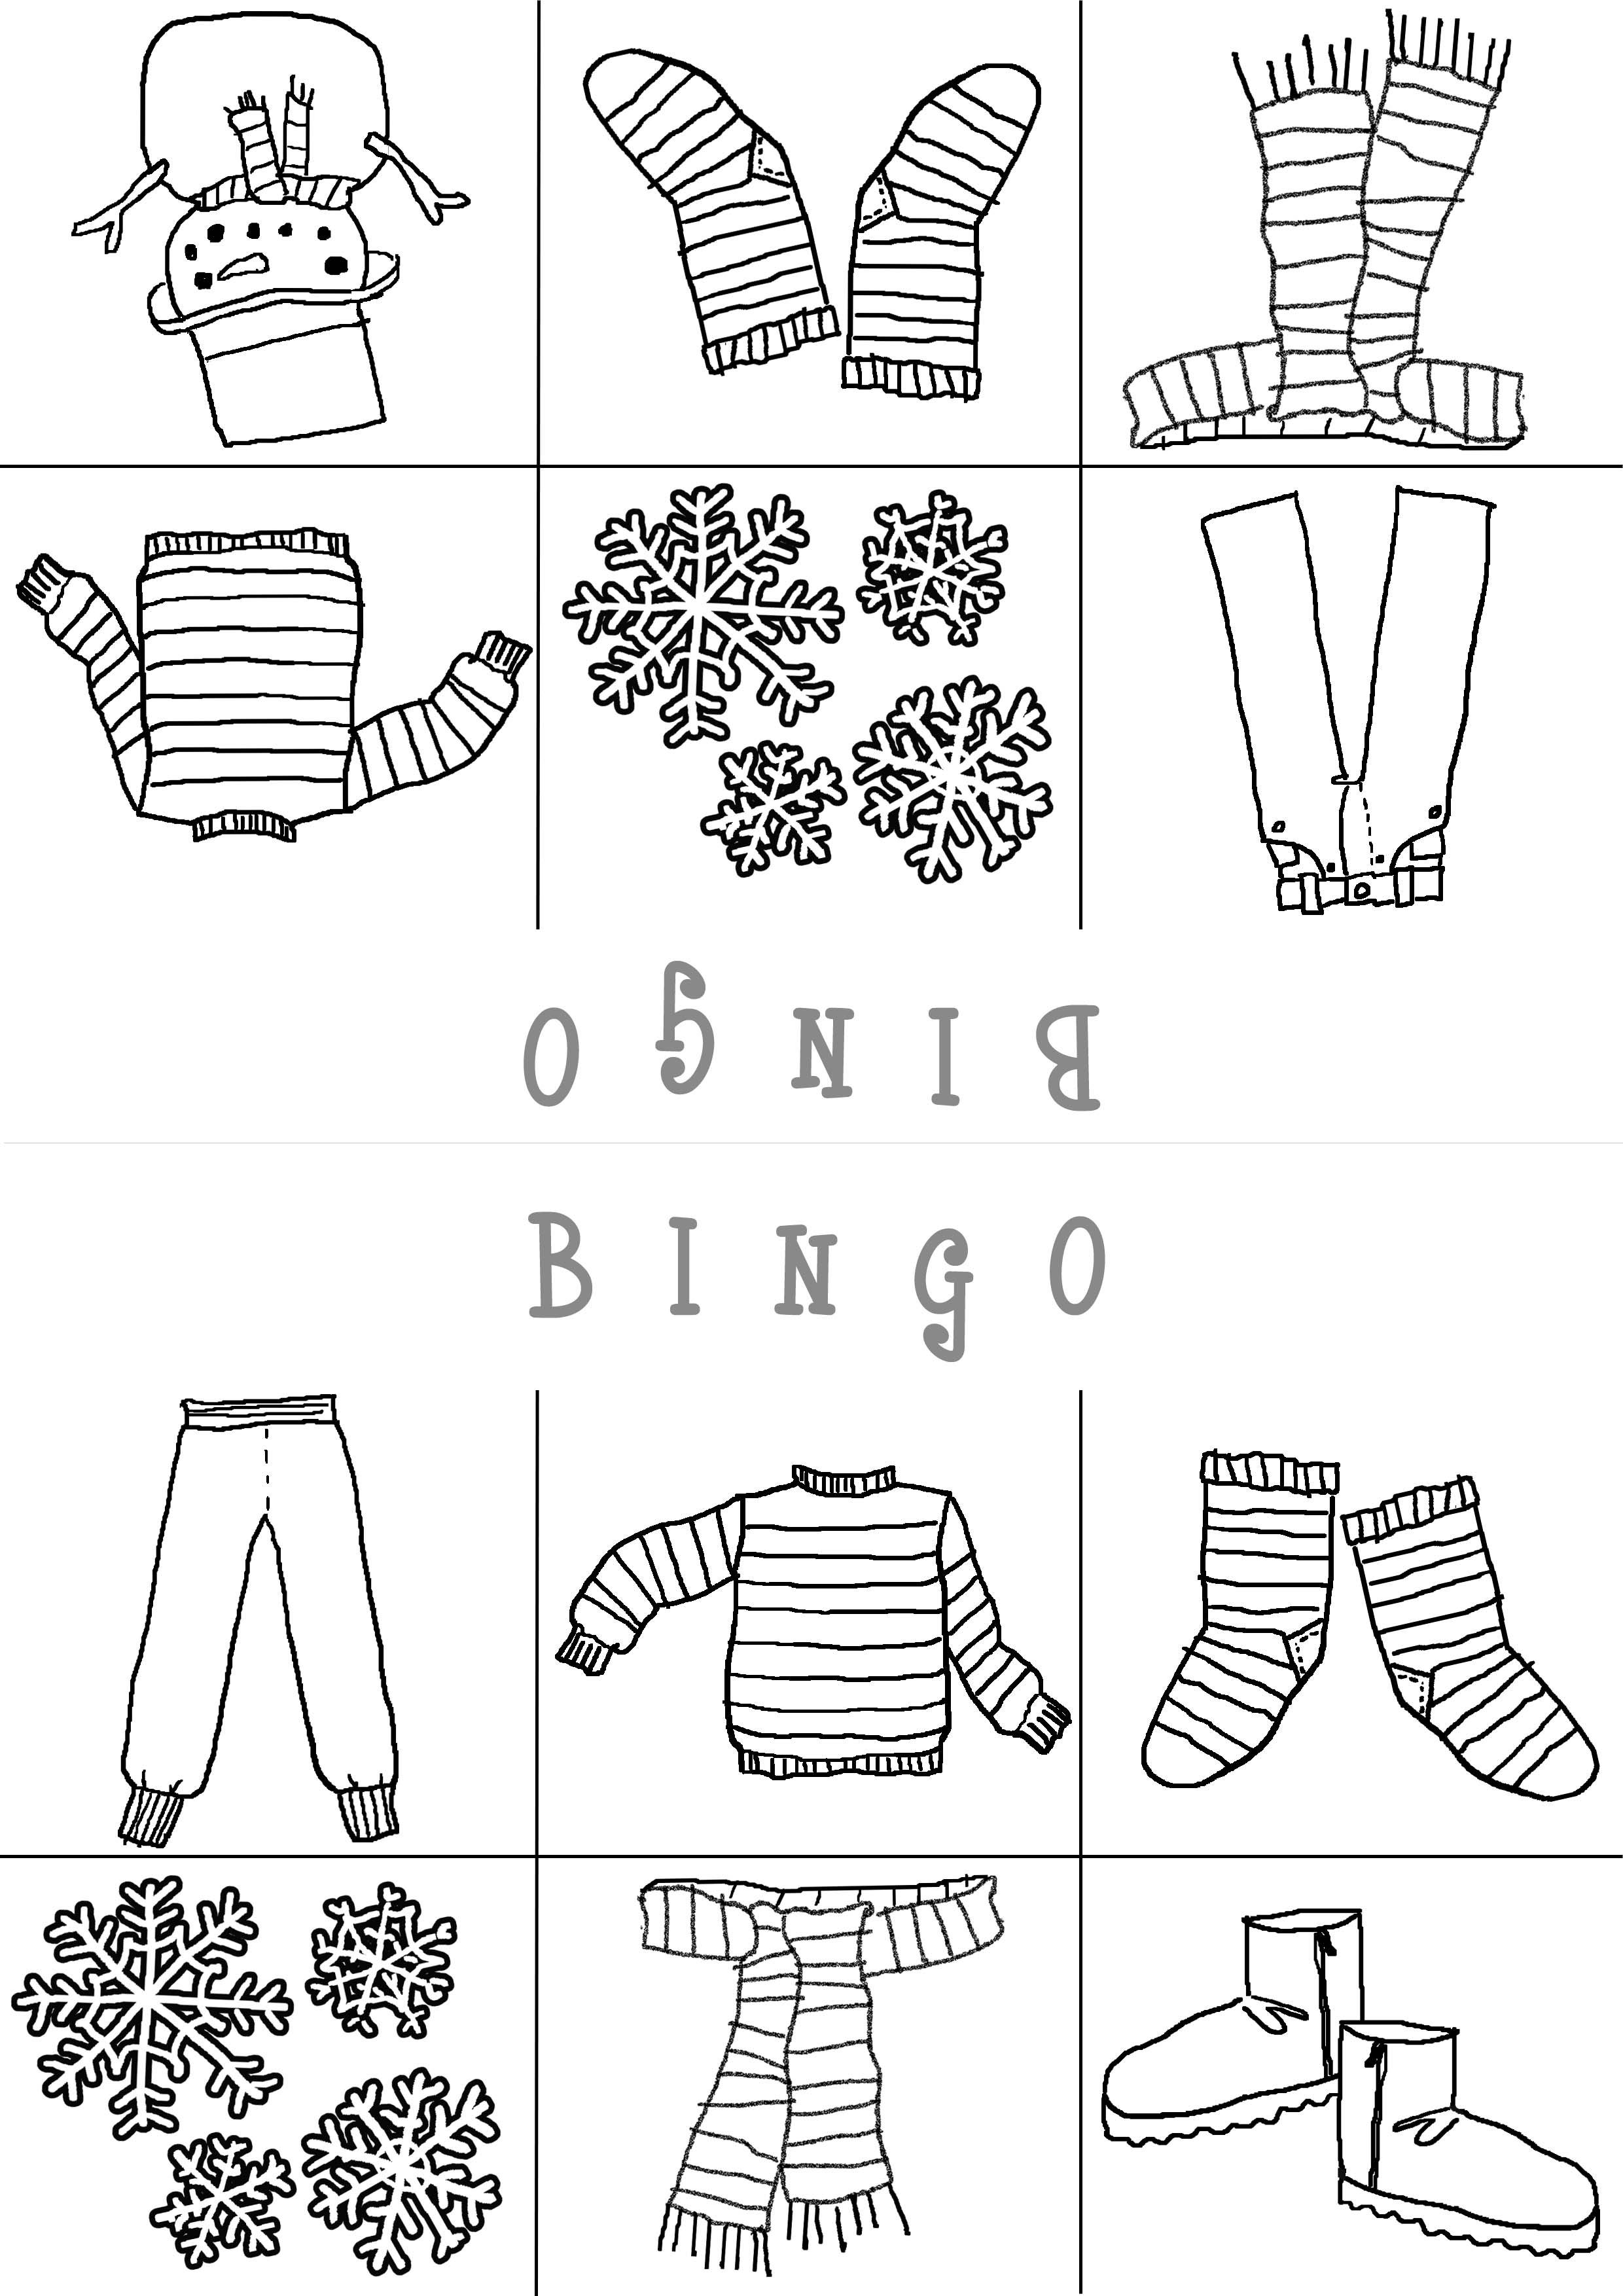 free swear word coloring pages - articulation360it